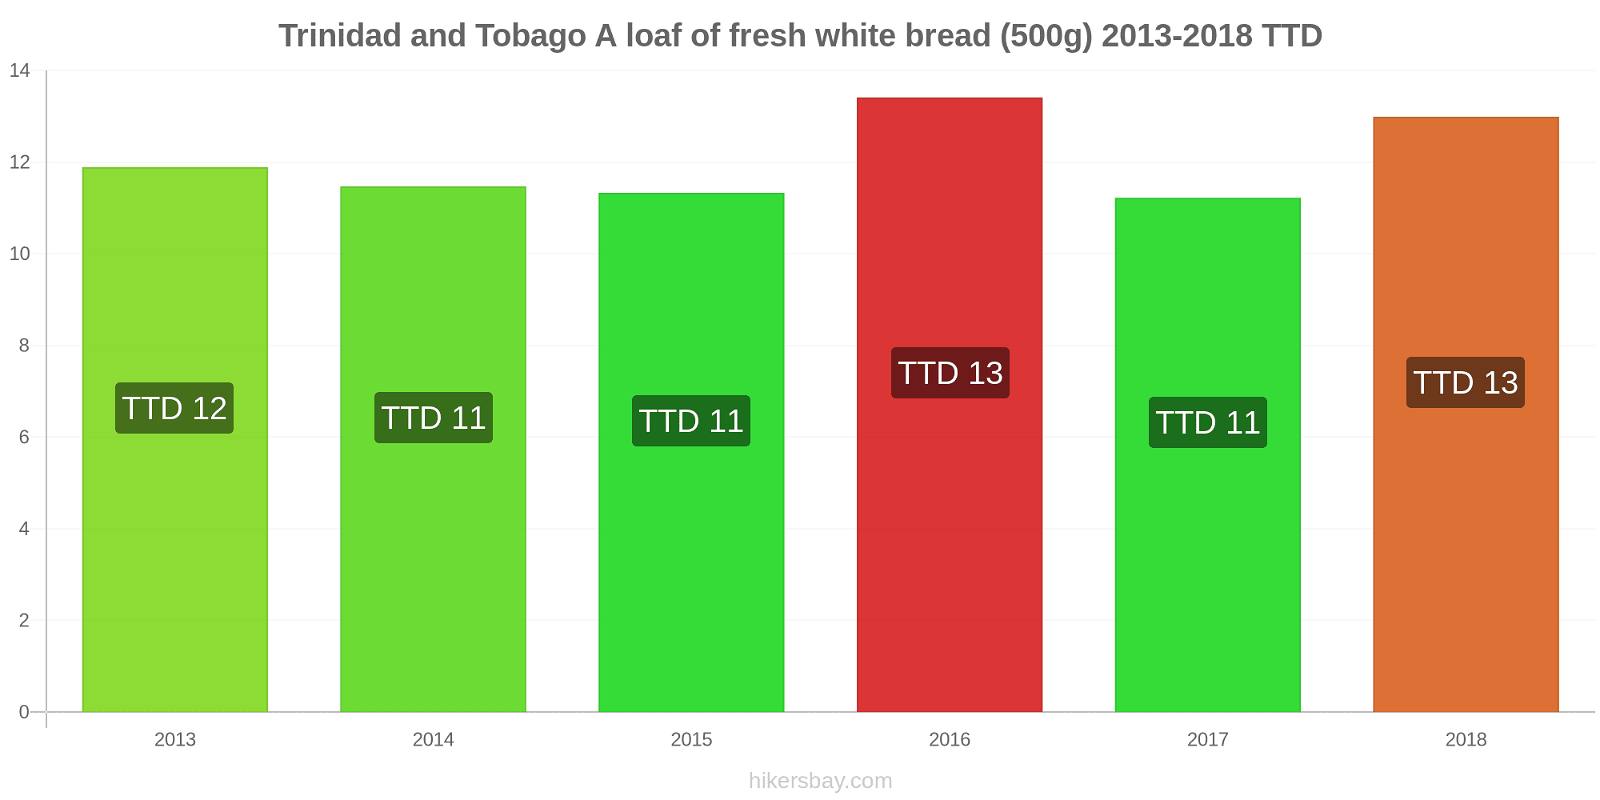 Trinidad and Tobago price changes A loaf of fresh white bread (500g) hikersbay.com